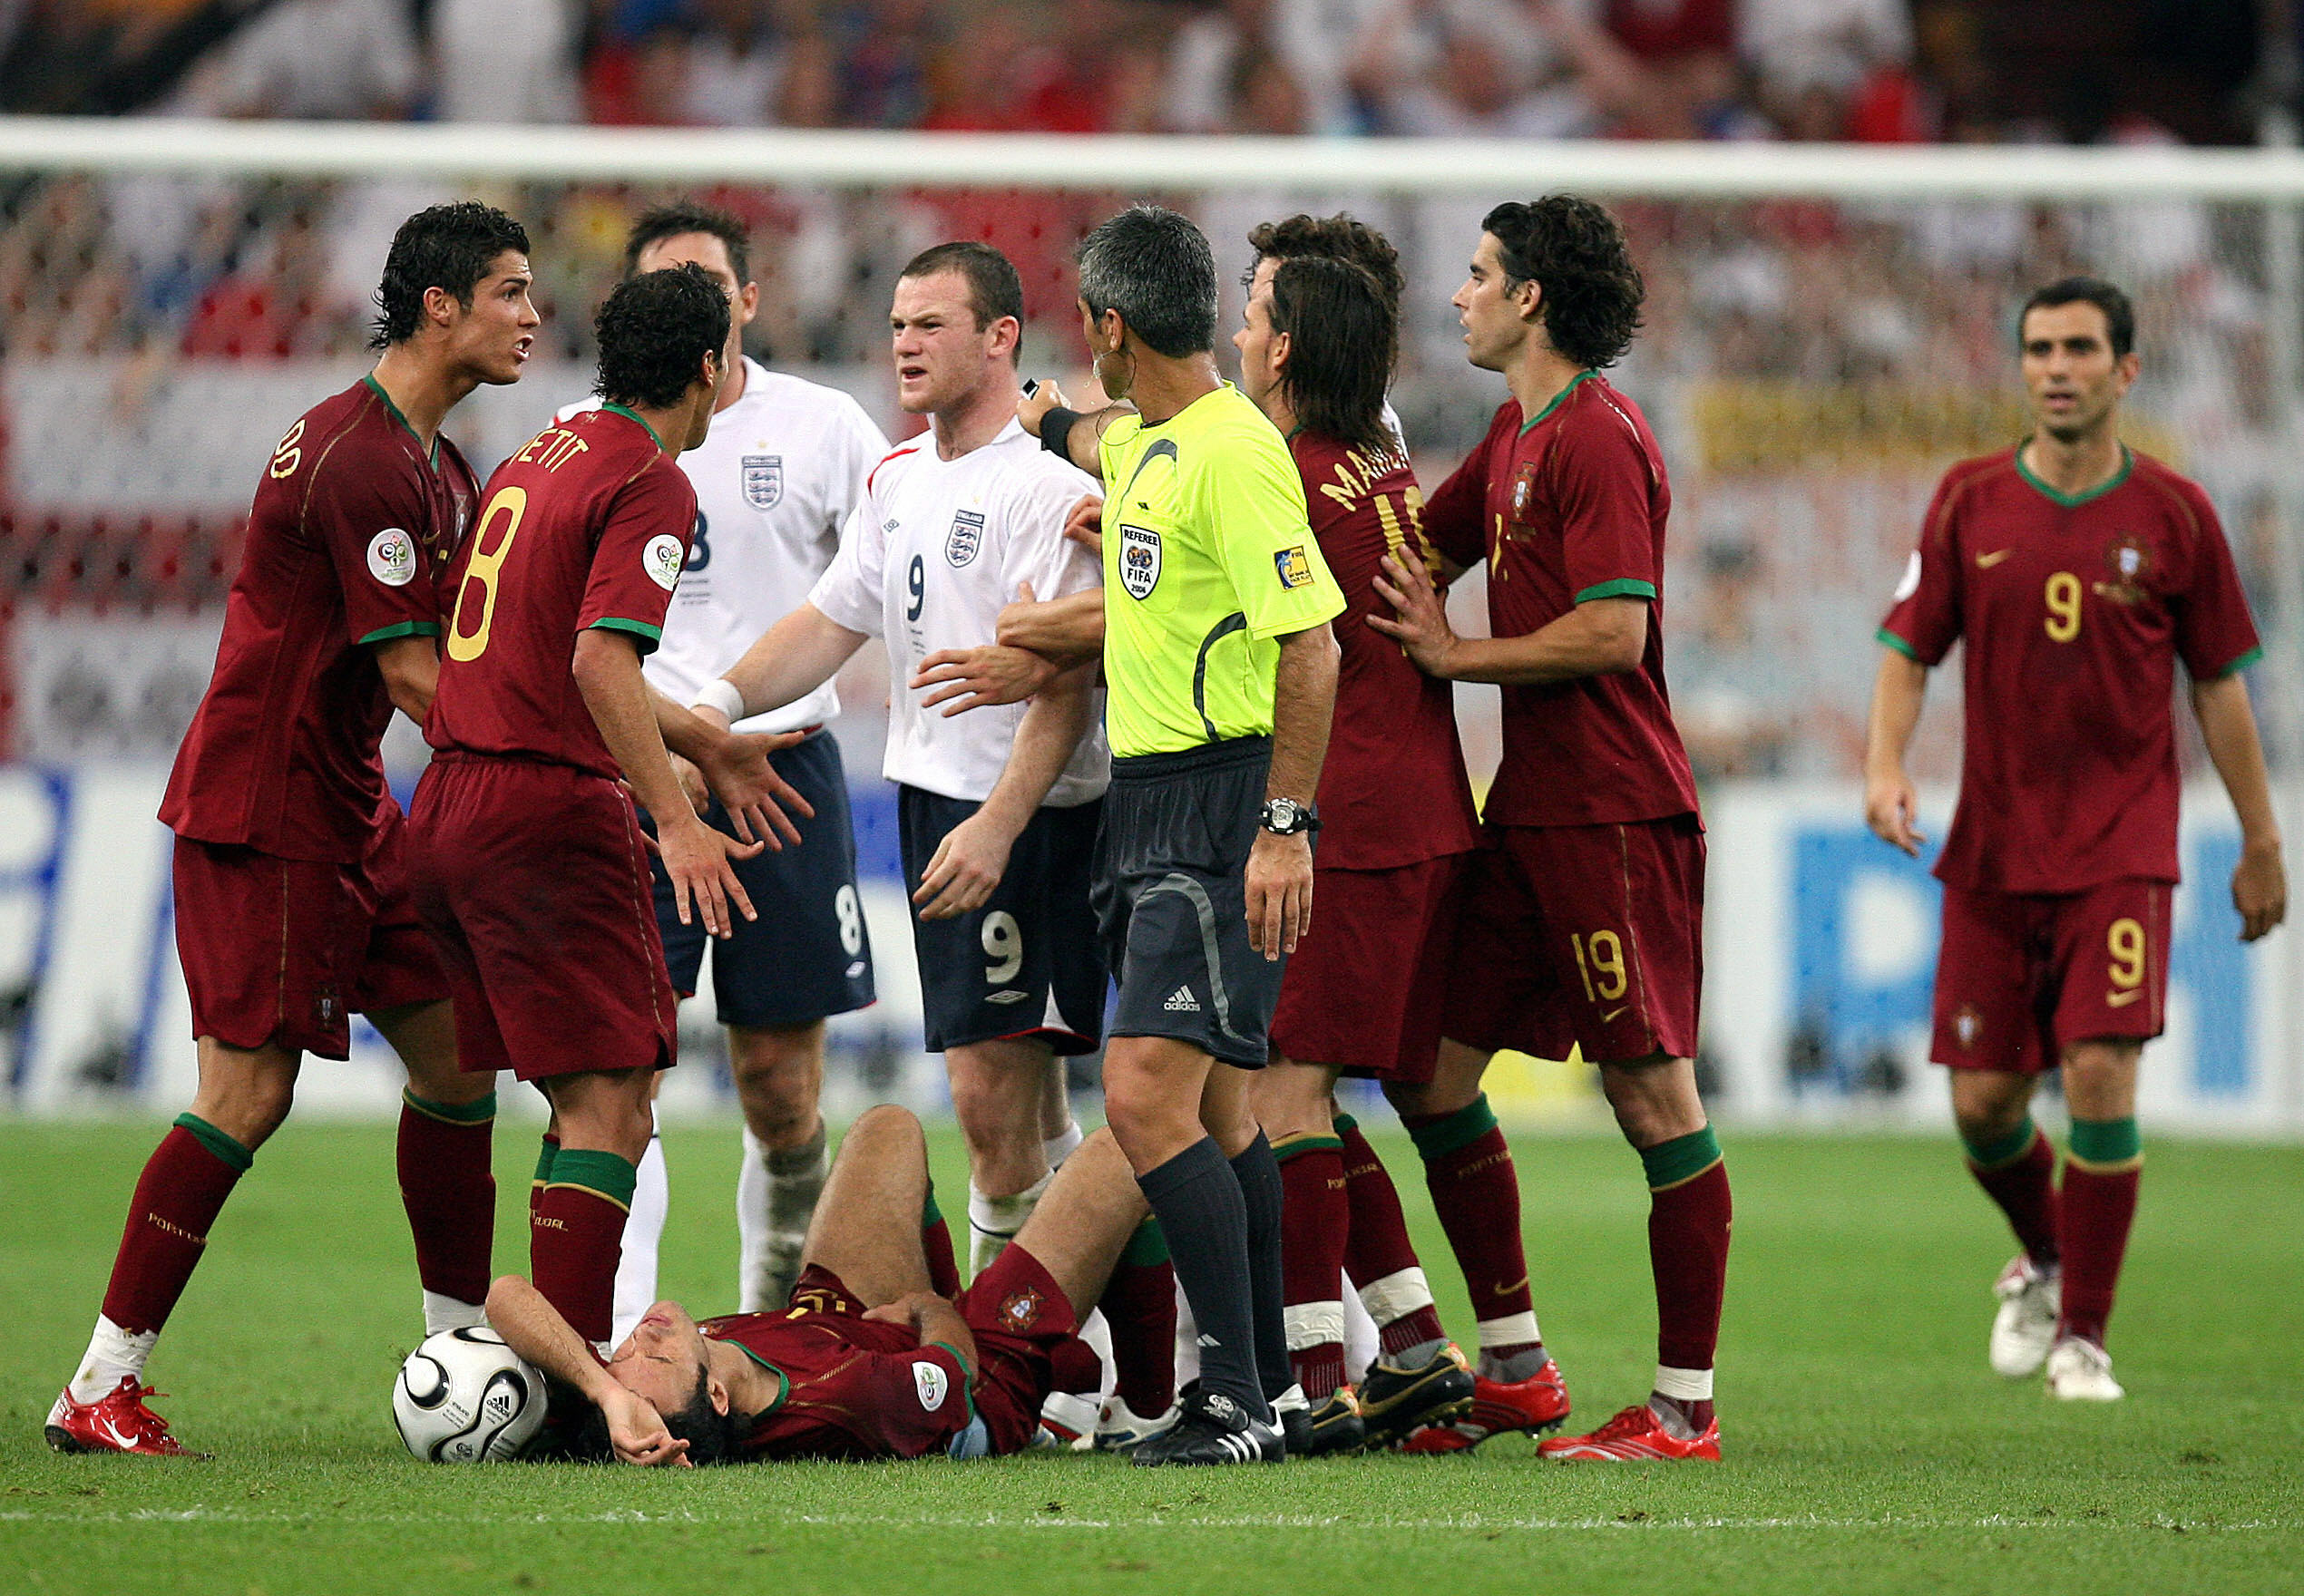 England VS Portugal, World Cup 2006